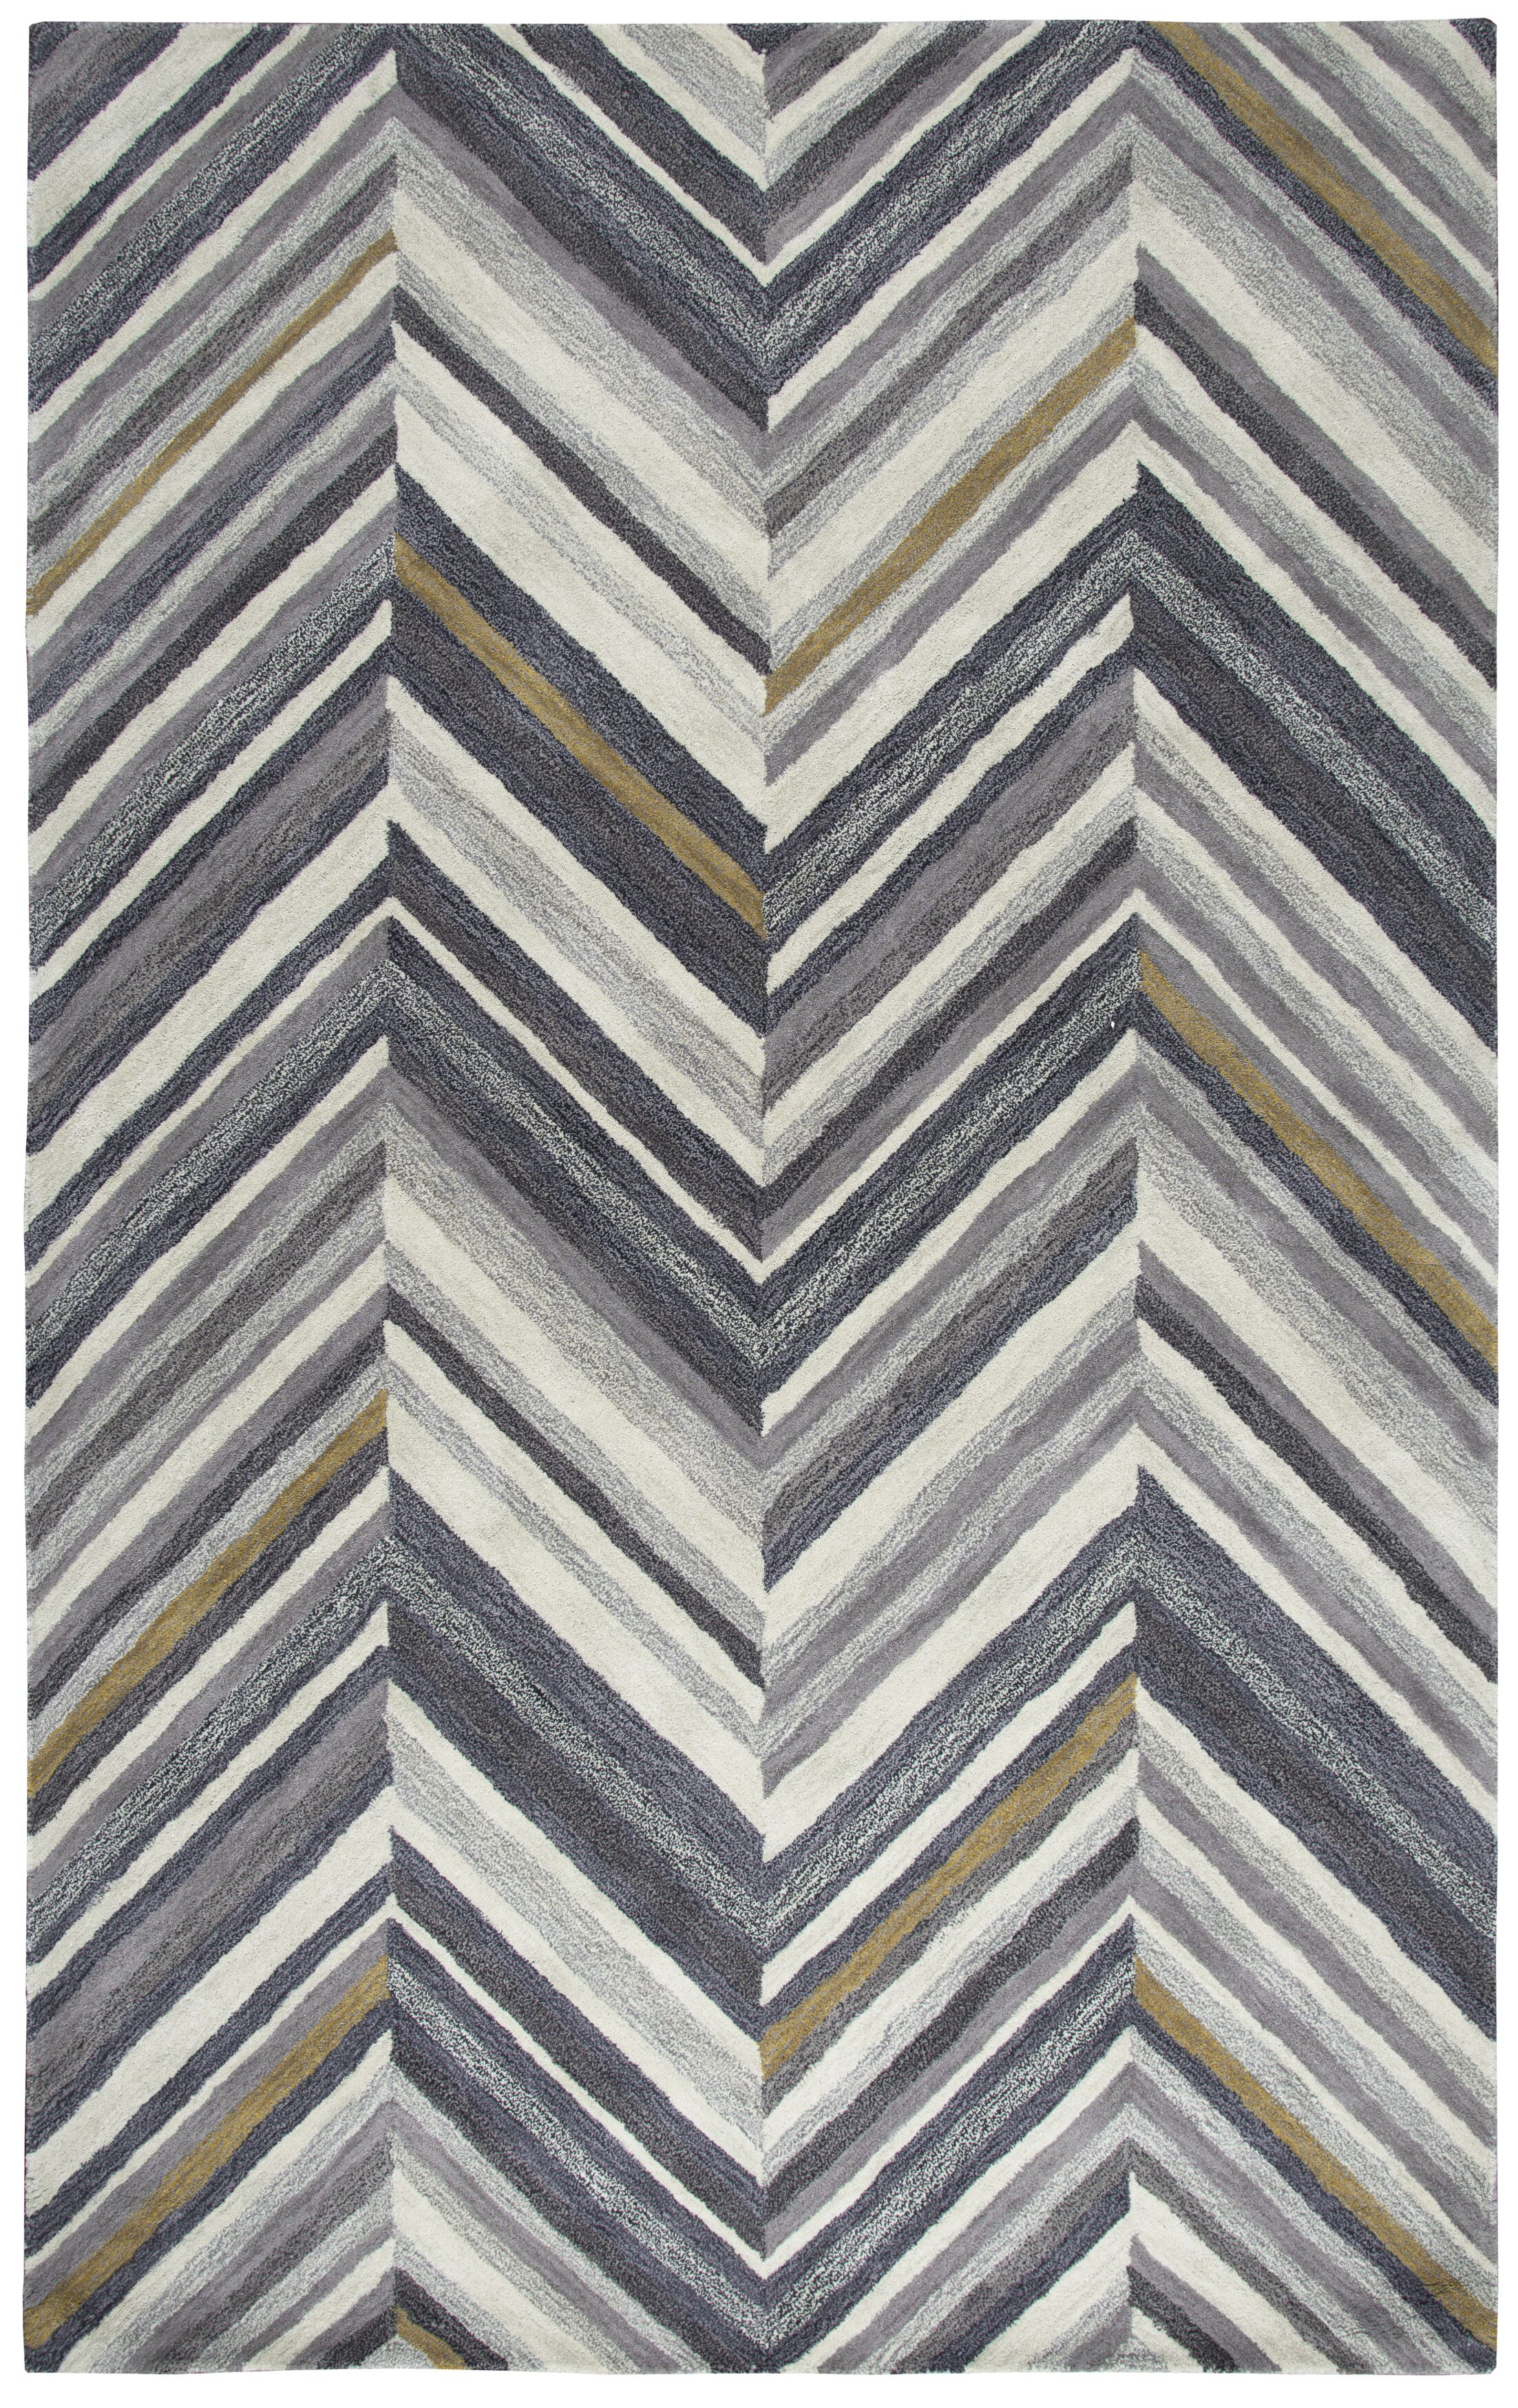 Manwaring Hand-Tufted Wool Gray Area Rug Rug Size: Rectangle 5' x 8'